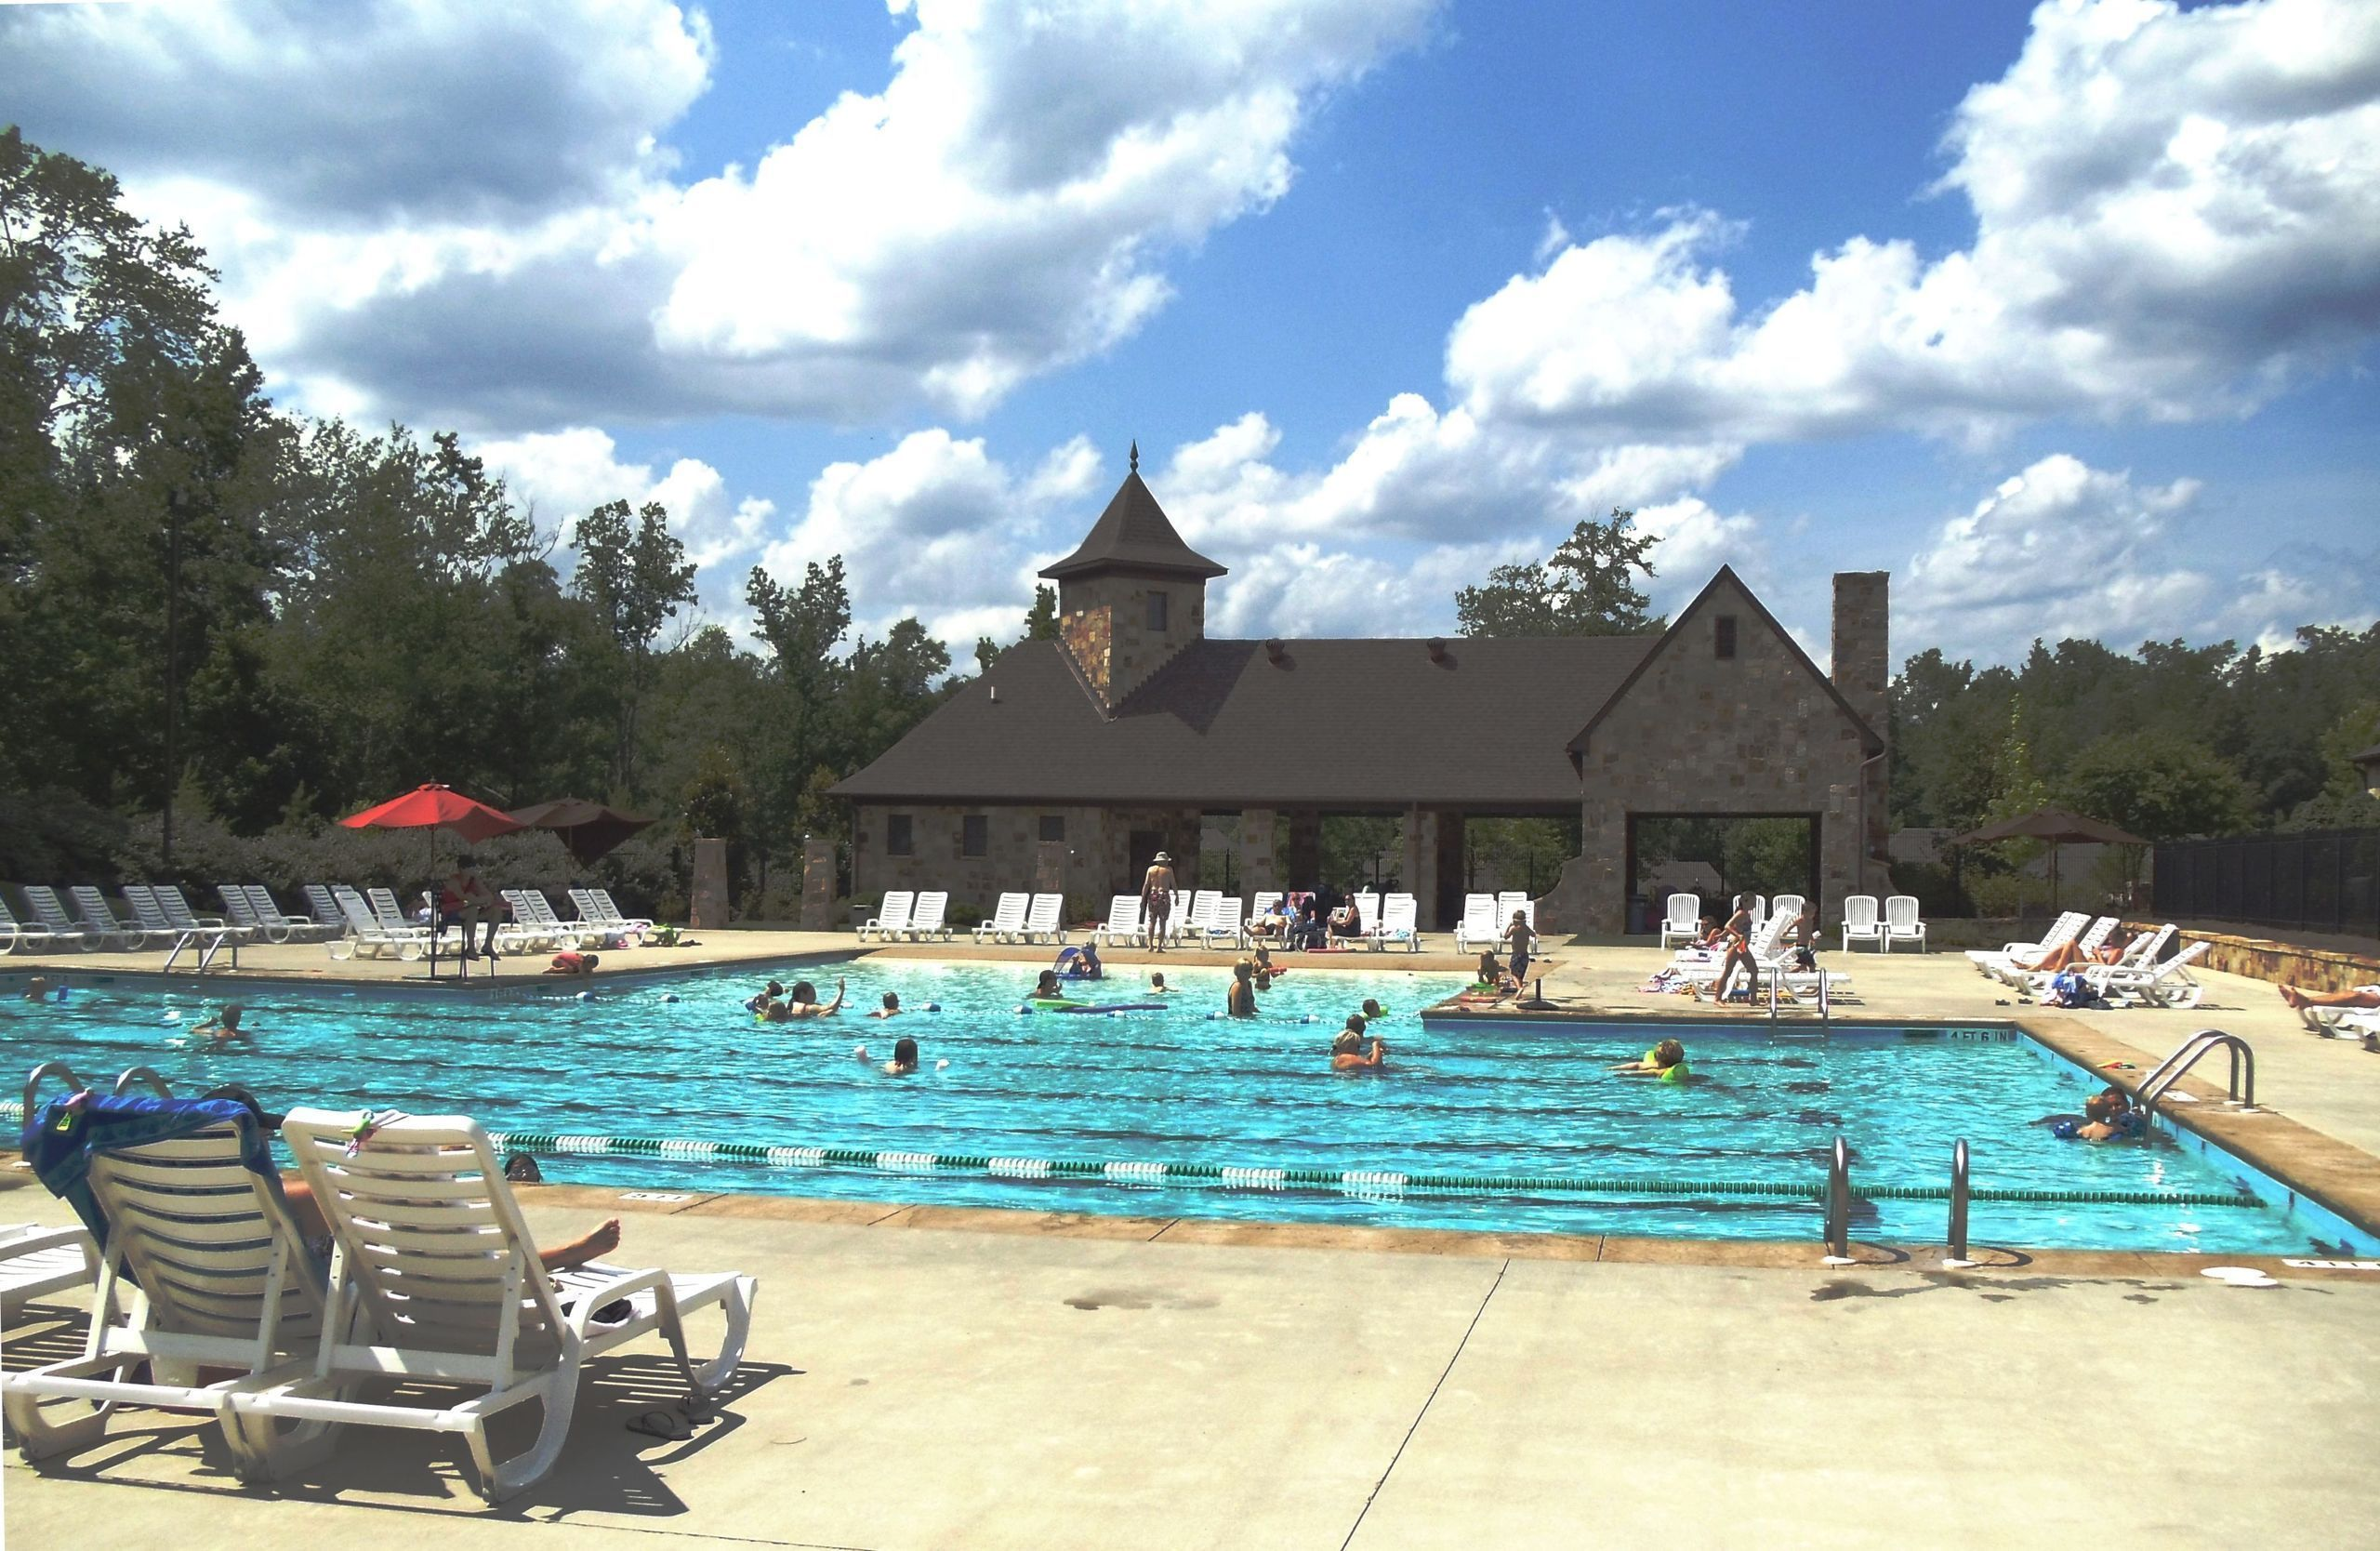 Ballantrae Community Pool Pelham Alabama